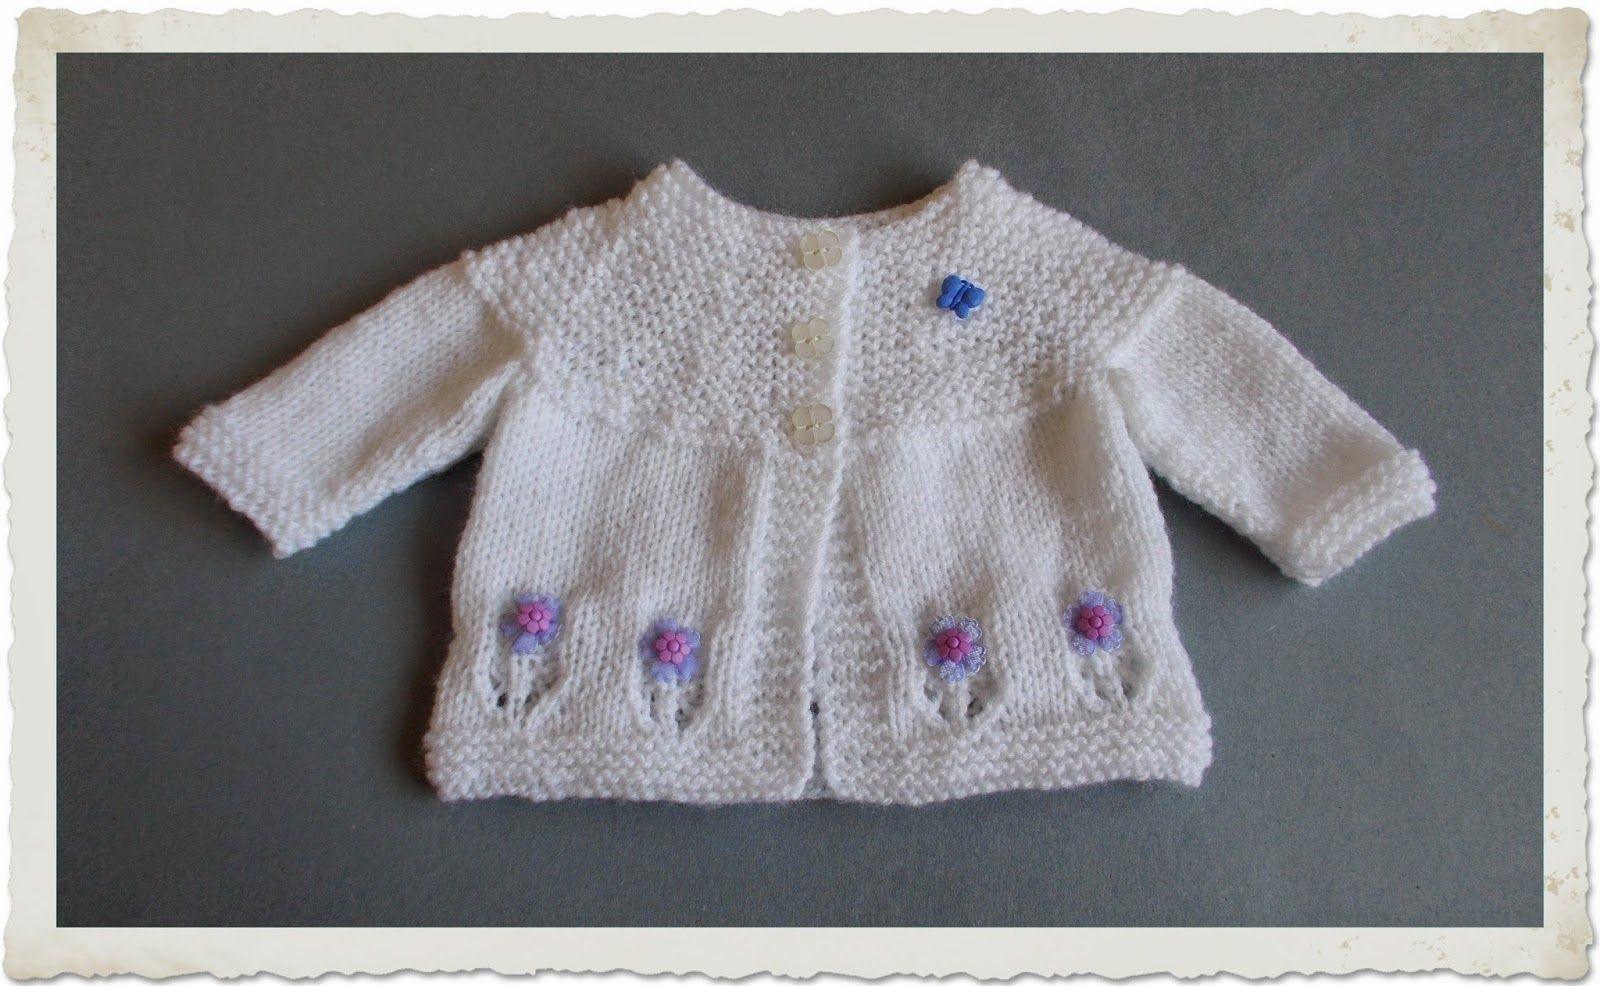 marianna\'s lazy daisy days - Fleur Baby Cardigan - free instructions ...